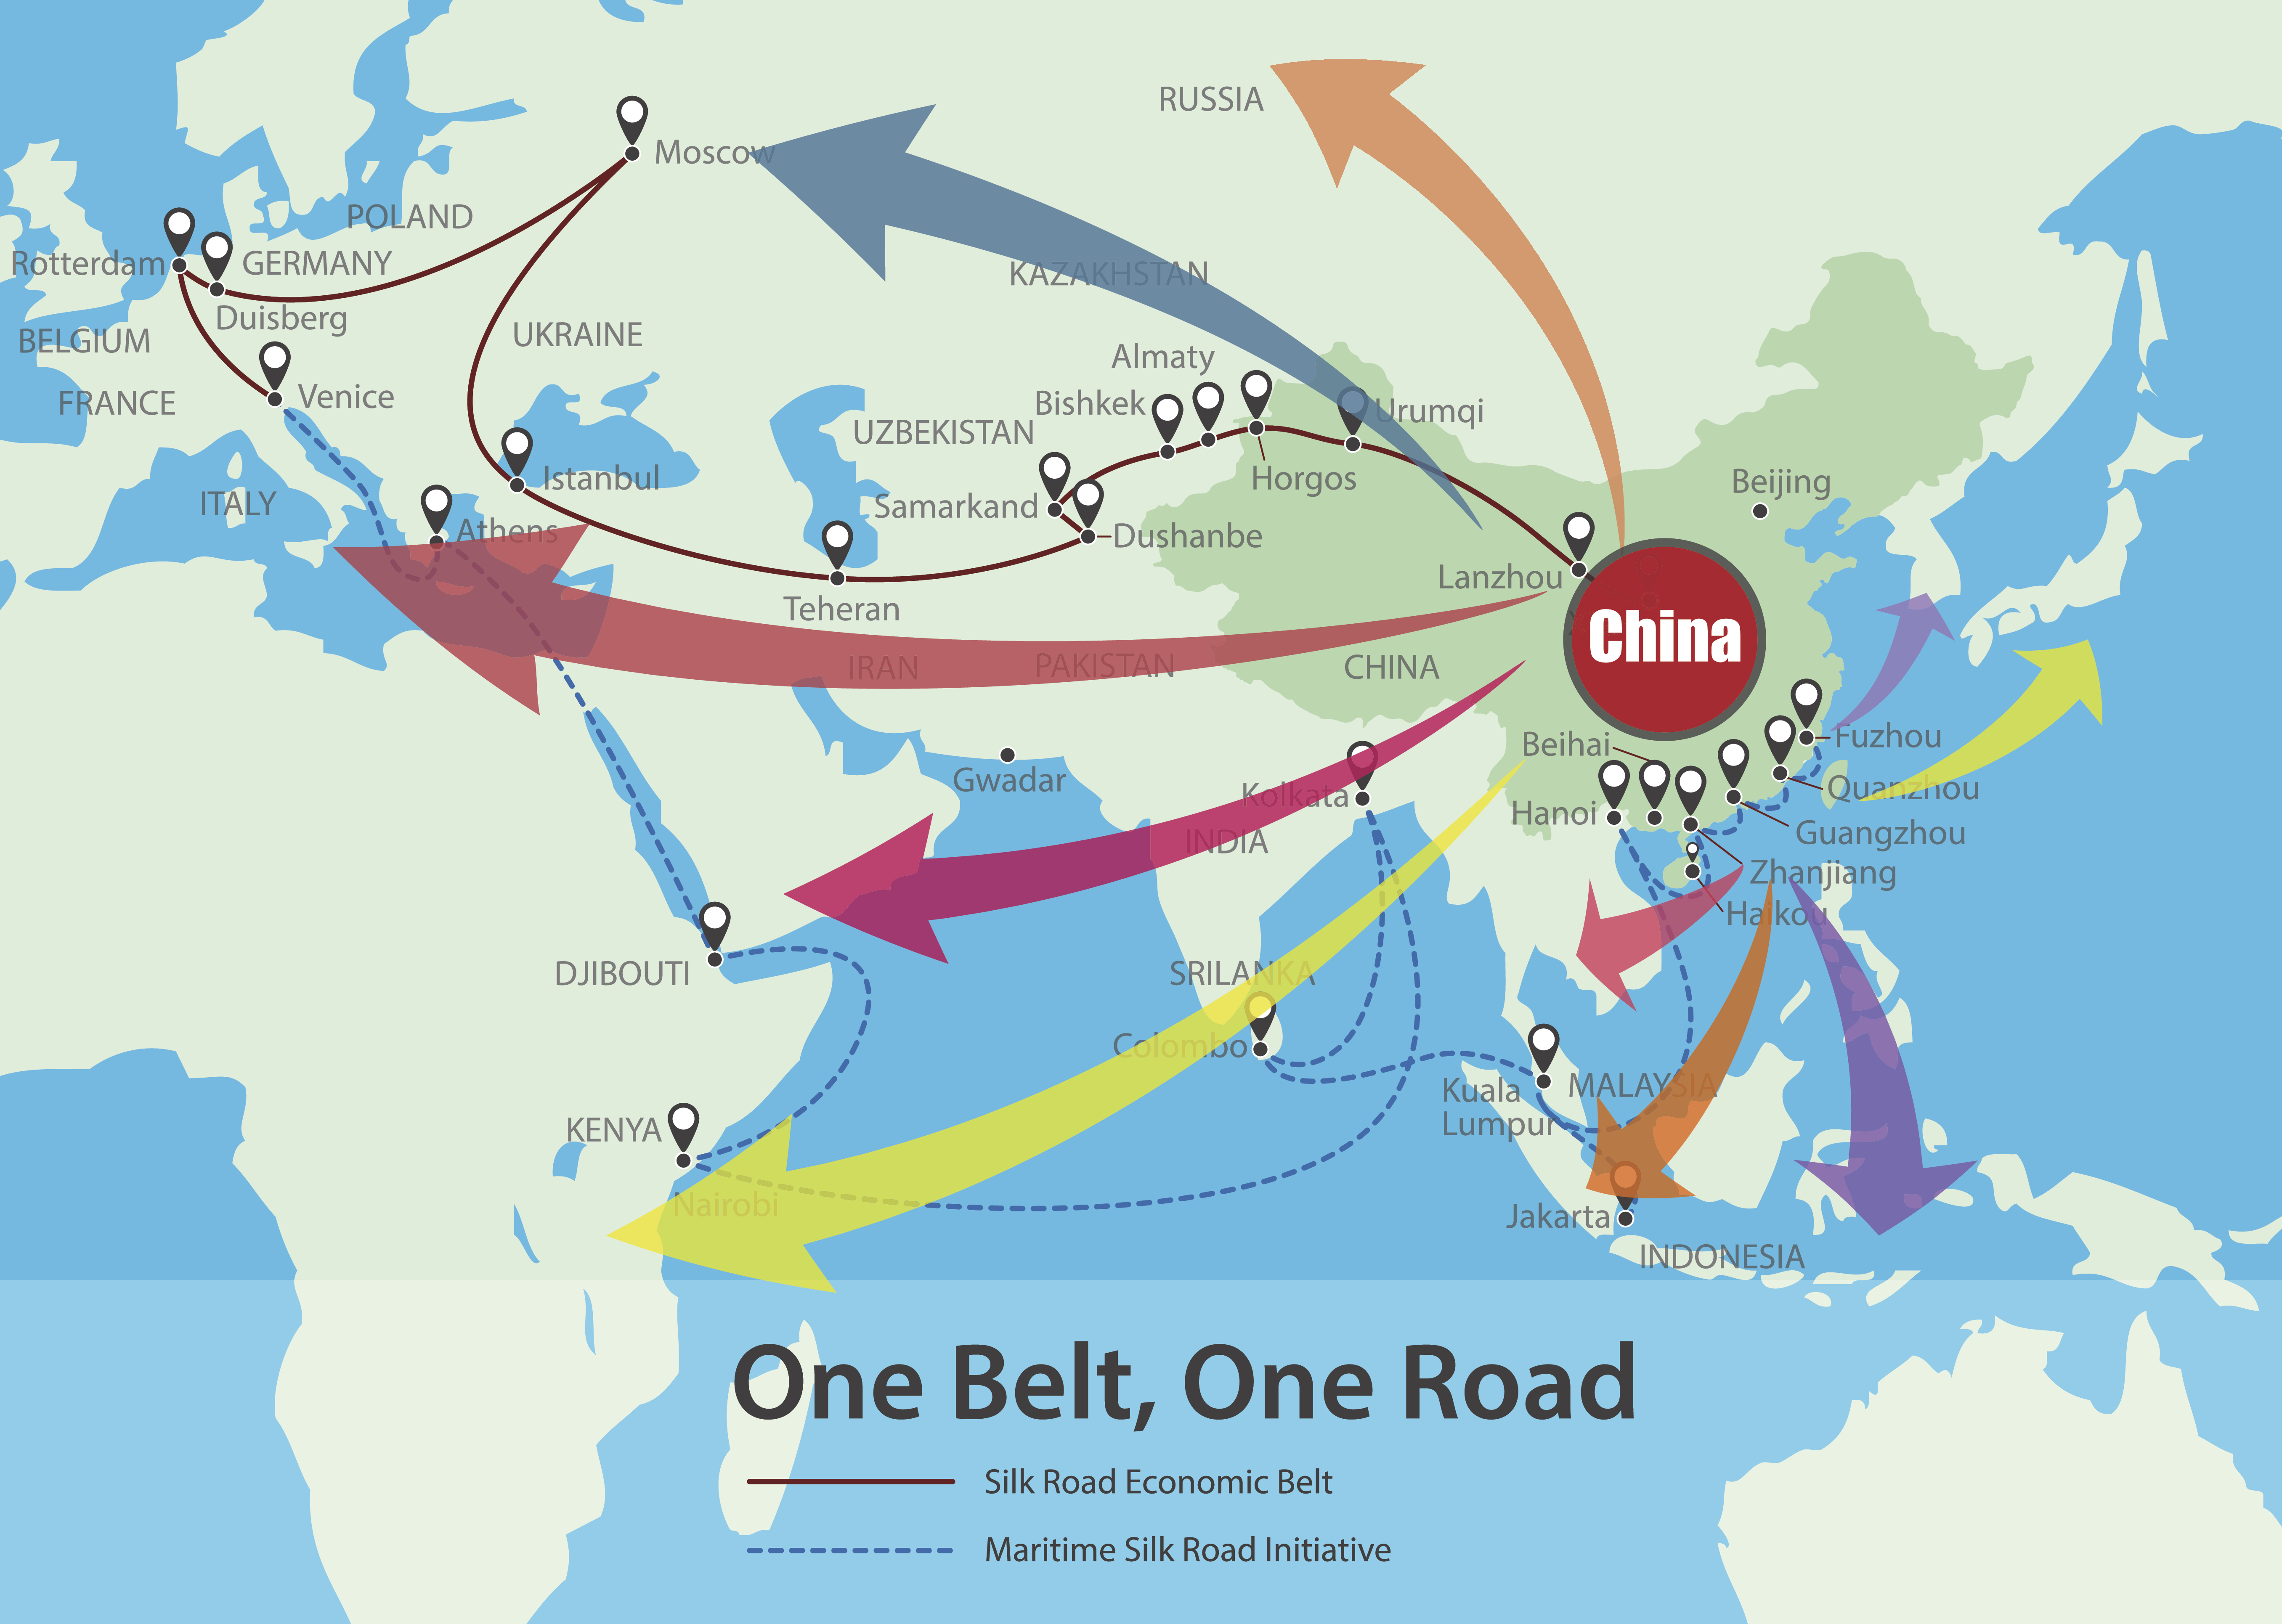 One Belt, One Road, Chinese strategic investment in the 21st century on